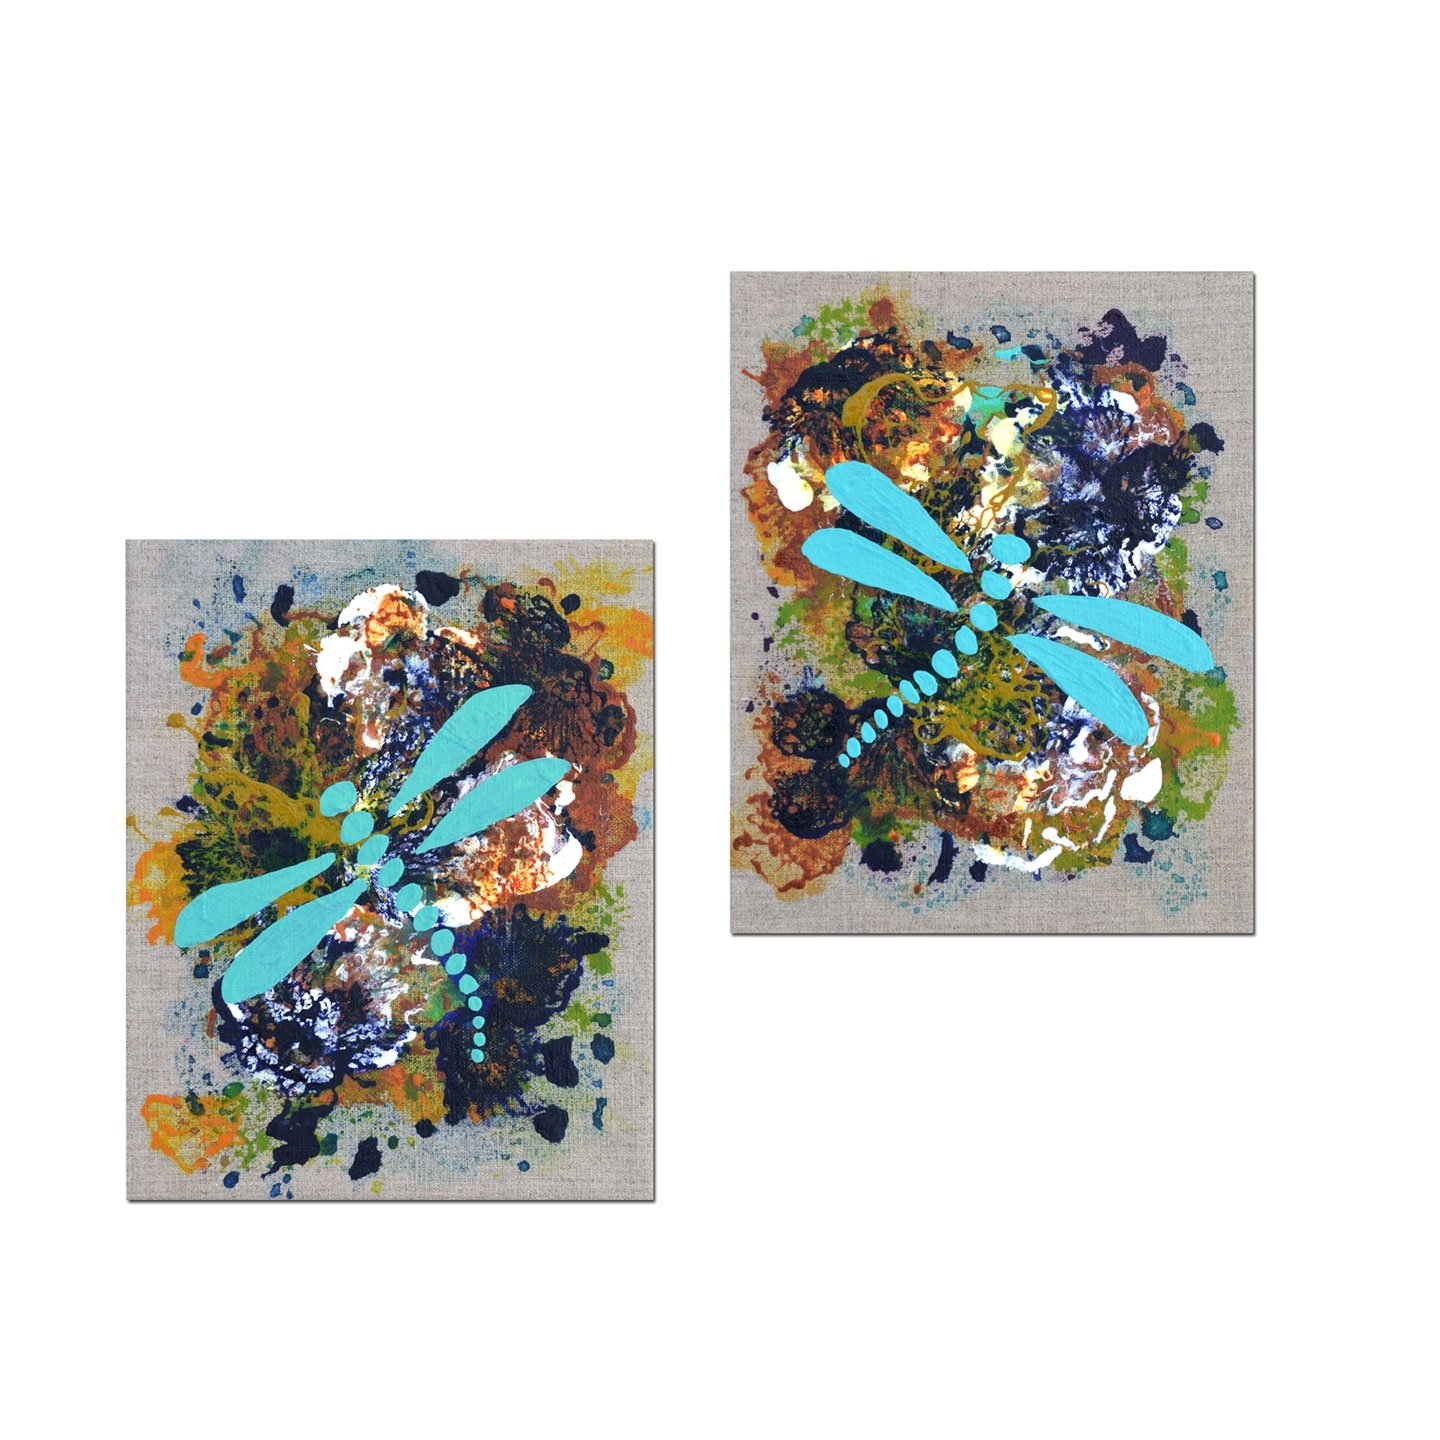 Home Decor Art: The Versatility Of Diptych Paintings With Regard To Recent Dragonfly Painting Wall Art (View 15 of 20)